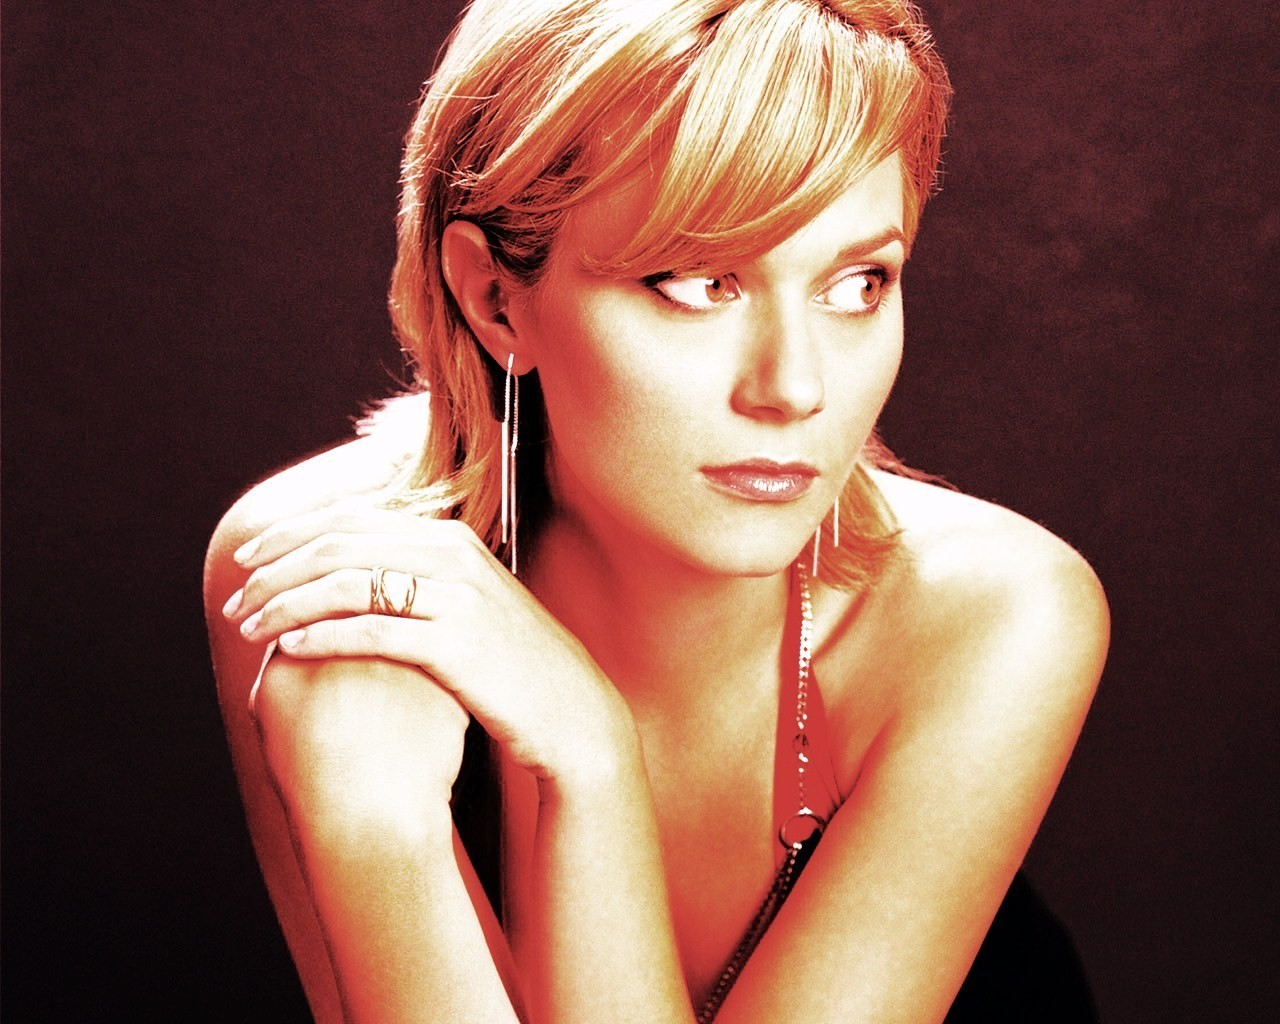 Hilarie 3 hilarie burton 5766884 1280 1024 My wonderful sister in law and